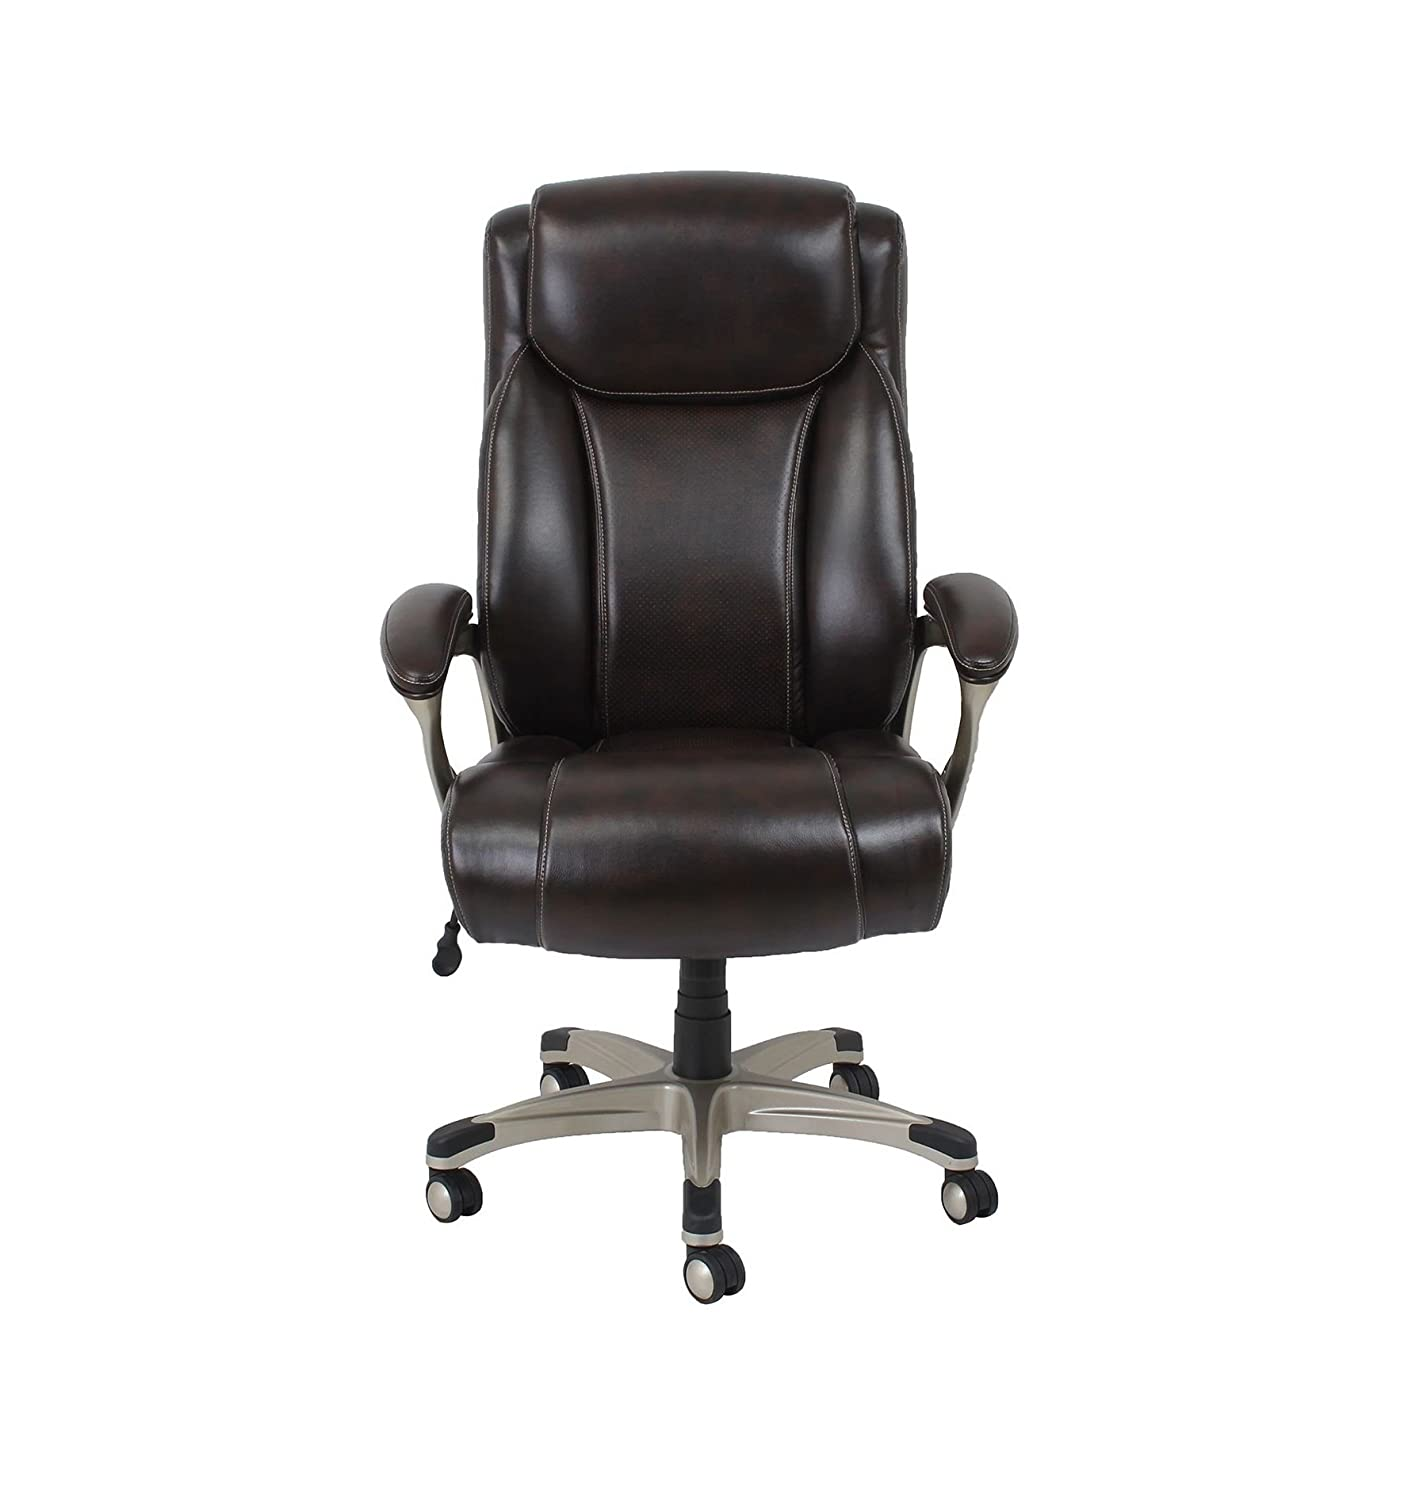 Amazon Barcalounger Big & Tall Brown Executive fice Chair